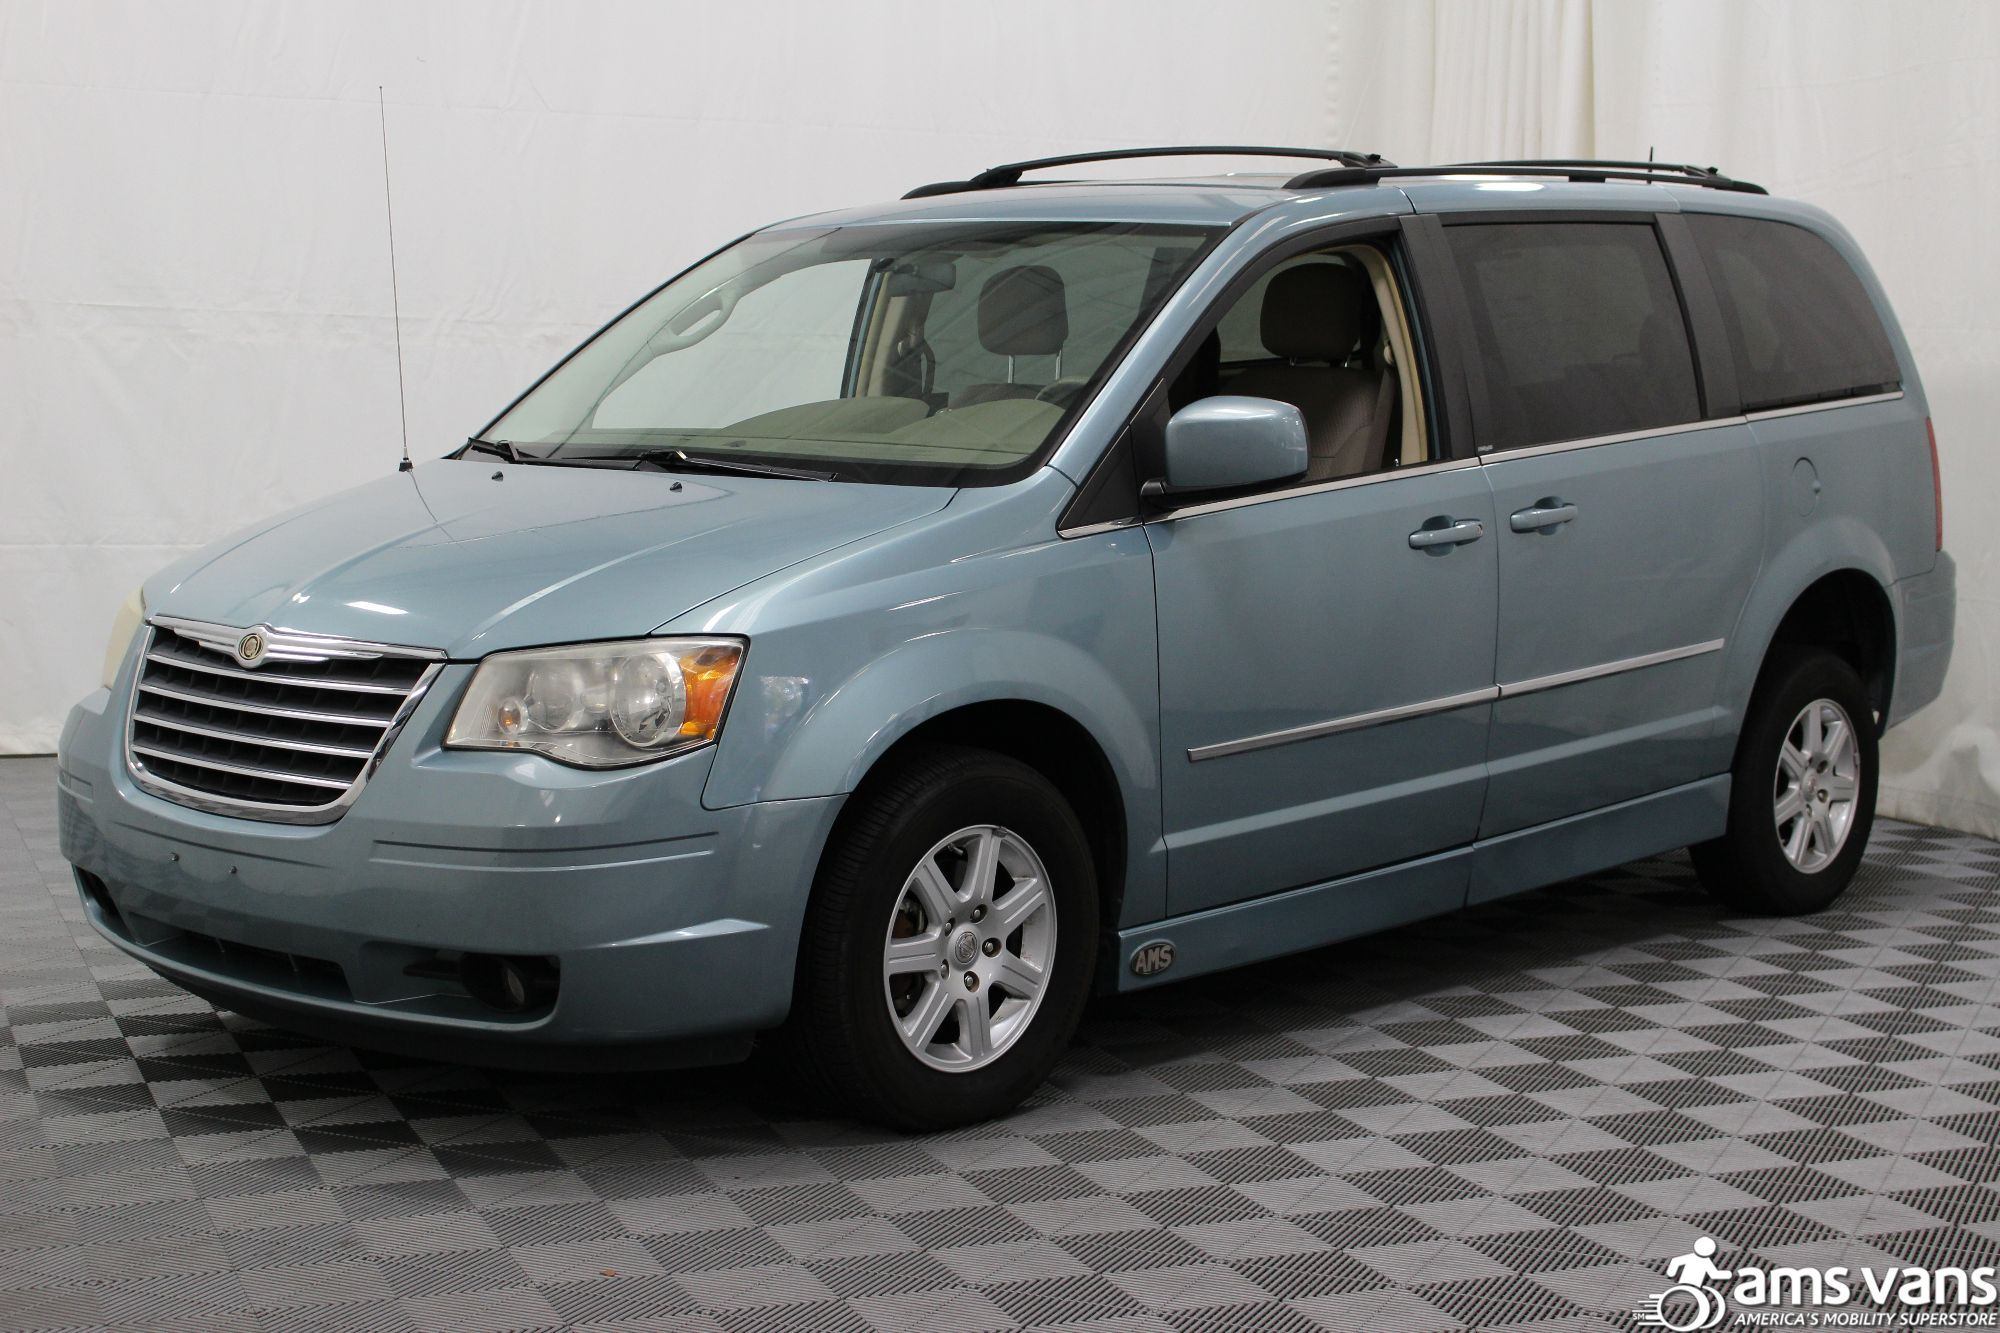 2010 Chrysler Town and Country Wheelchair Van For Sale #17